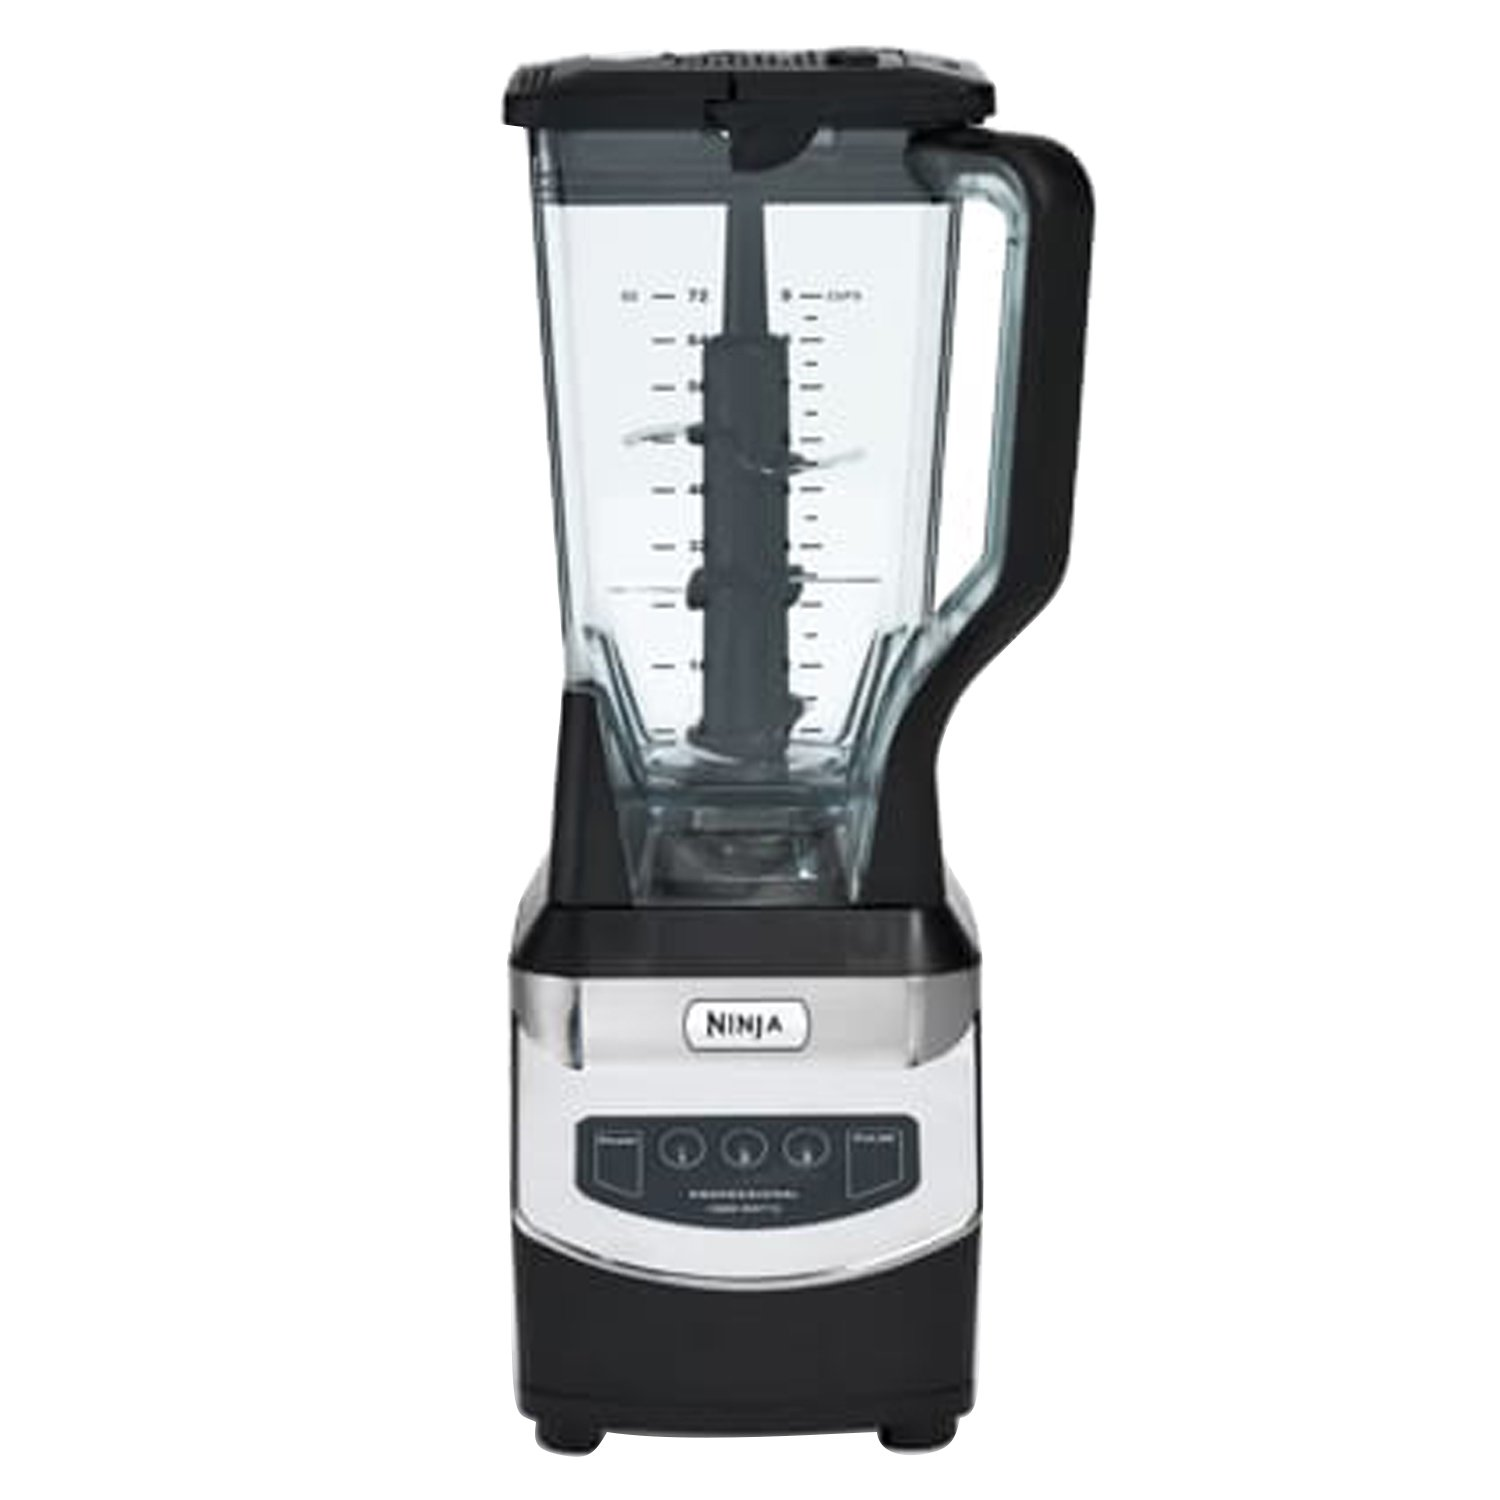 Ninja Professional Blender (NJ600) (Certified Refurbished)